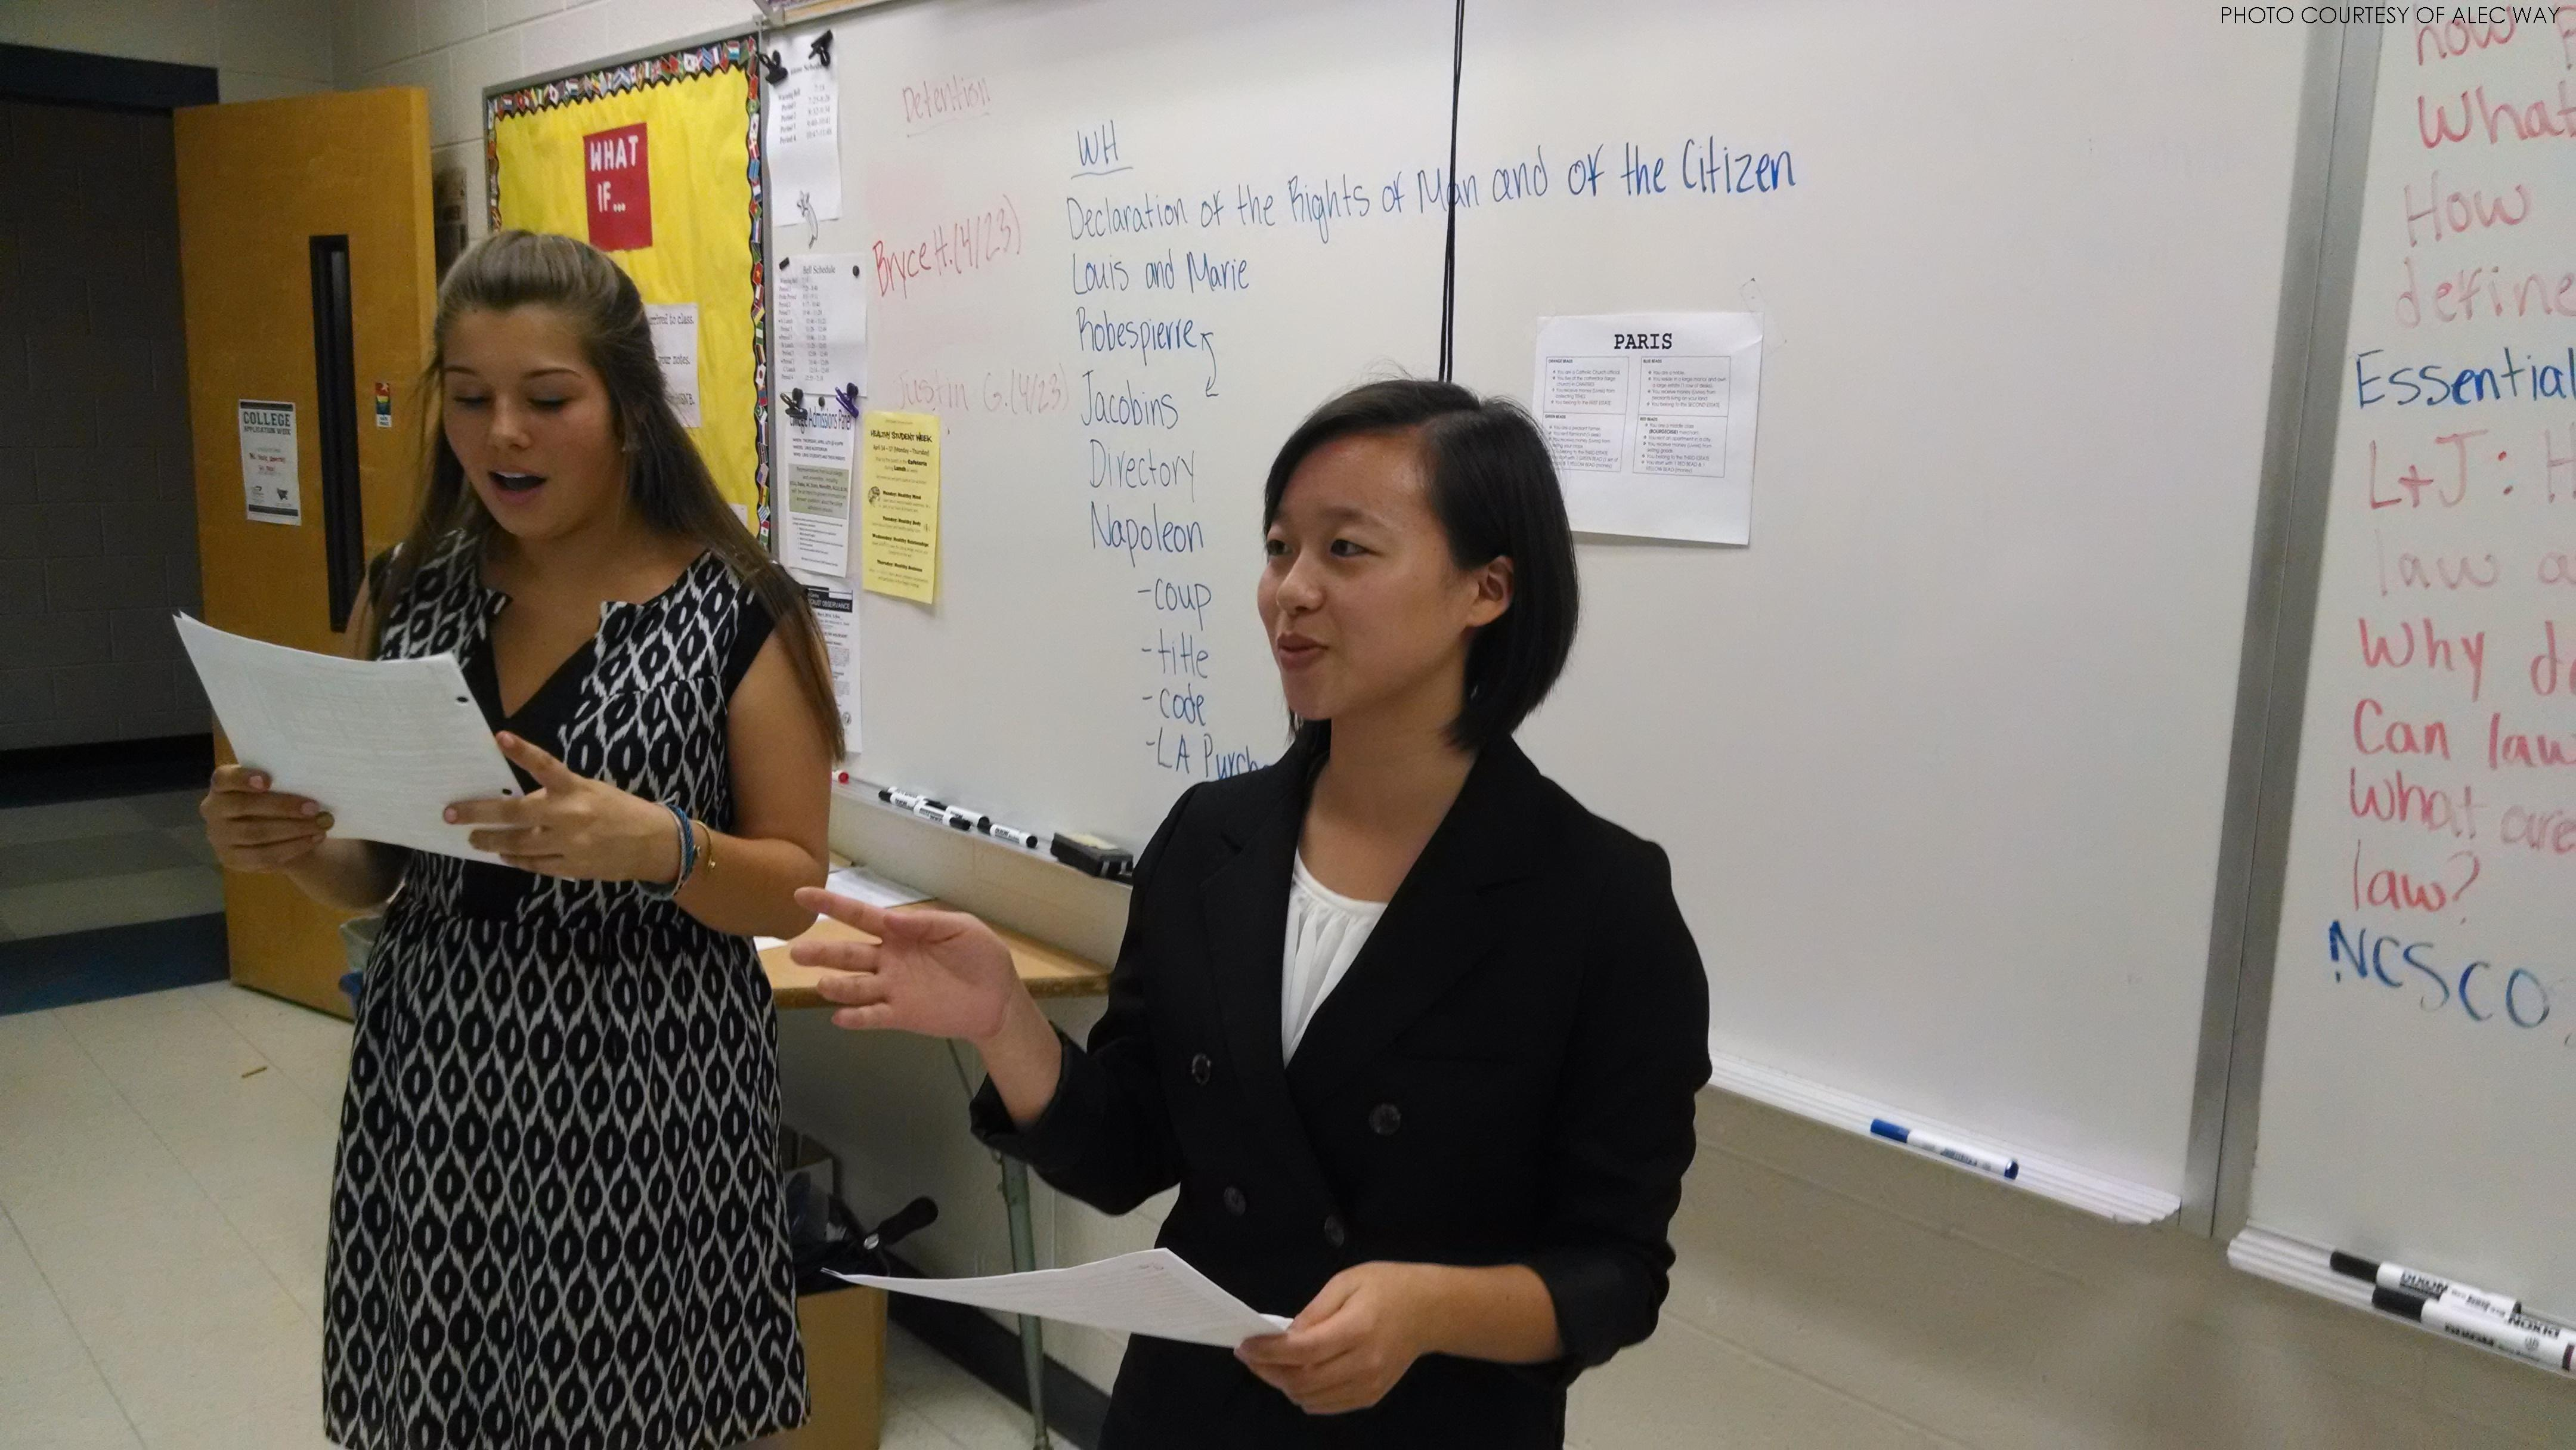 Deborah Yoo (senior) and Eugenie Riga (junior), defense attorneys in a case involving a car accident, stand for their closing statement. The trial consists of an opening statement, followed by the direct and cross examination of witnesses for both sides, ending with each sides' closing arguments.